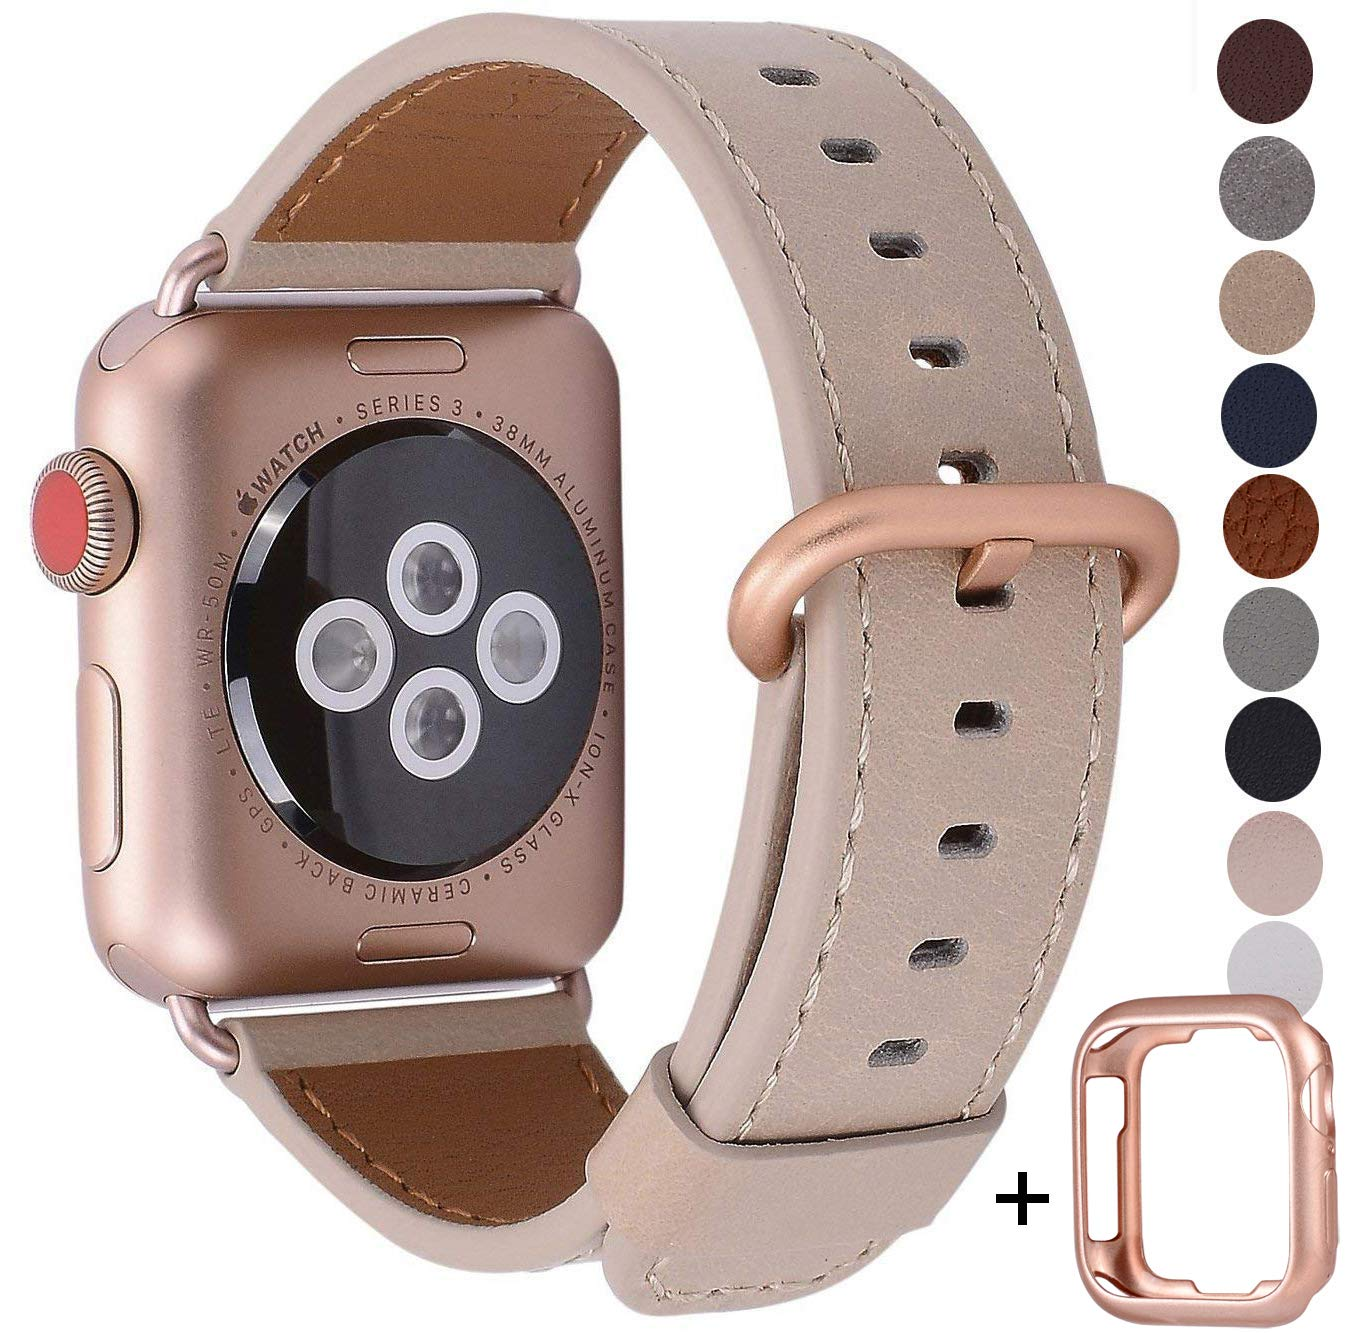 JSGJMY Compatible for Iwatch Band 38mm 40mm S/M Women Genuine Leather Loop Replacement Strap Compatible for iWatch Series 4 (40mm) Series 3 2 1 (38mm),Light tan with Series 4/3 Rose Gold Clasp by JSGJMY